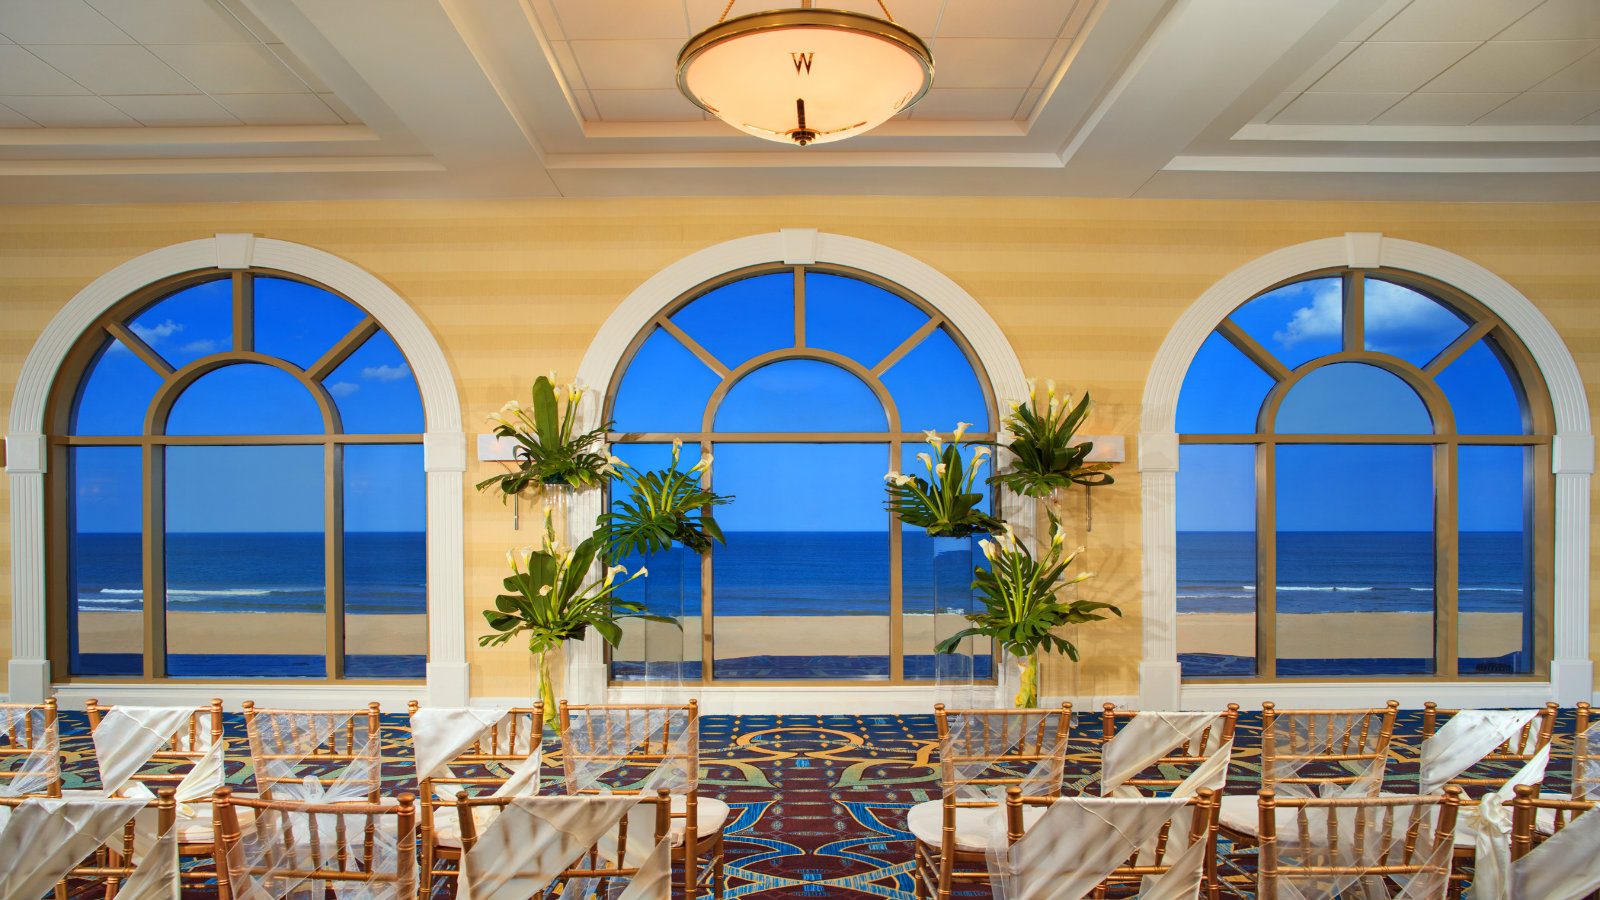 Virginia beach wedding venues sheraton virginia beach oceanfront hotel virginia beach wedding venues junglespirit Gallery